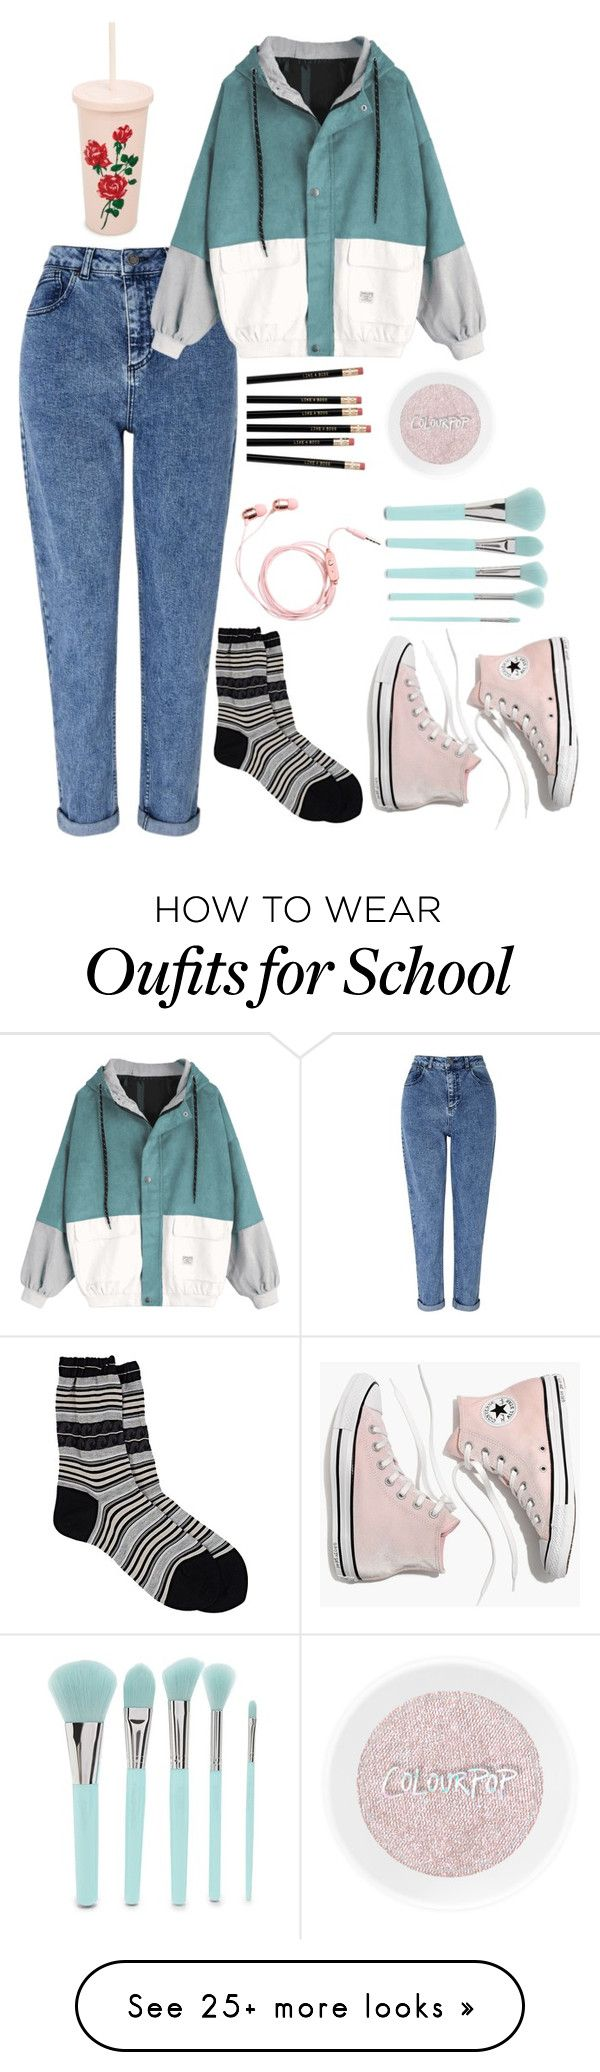 """""""story"""" by katniss1212 on Polyvore featuring Miss Selfridge, Antipast, Madewell, Forever 21 and ban.do"""